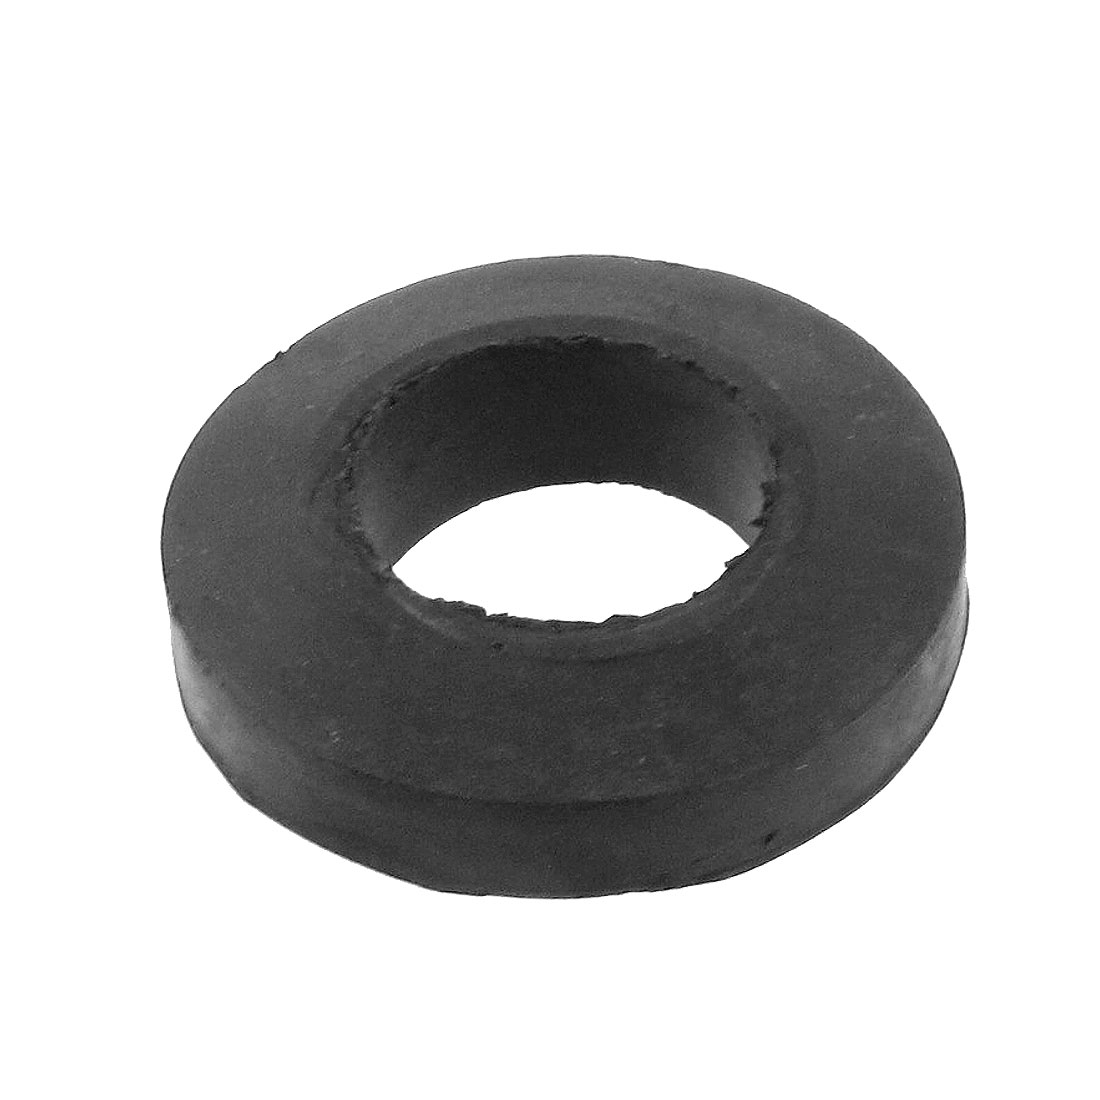 Black Flexible Rubber Shock Absorber Coupling Bush Cushion 30mm x 45mm x 14mm